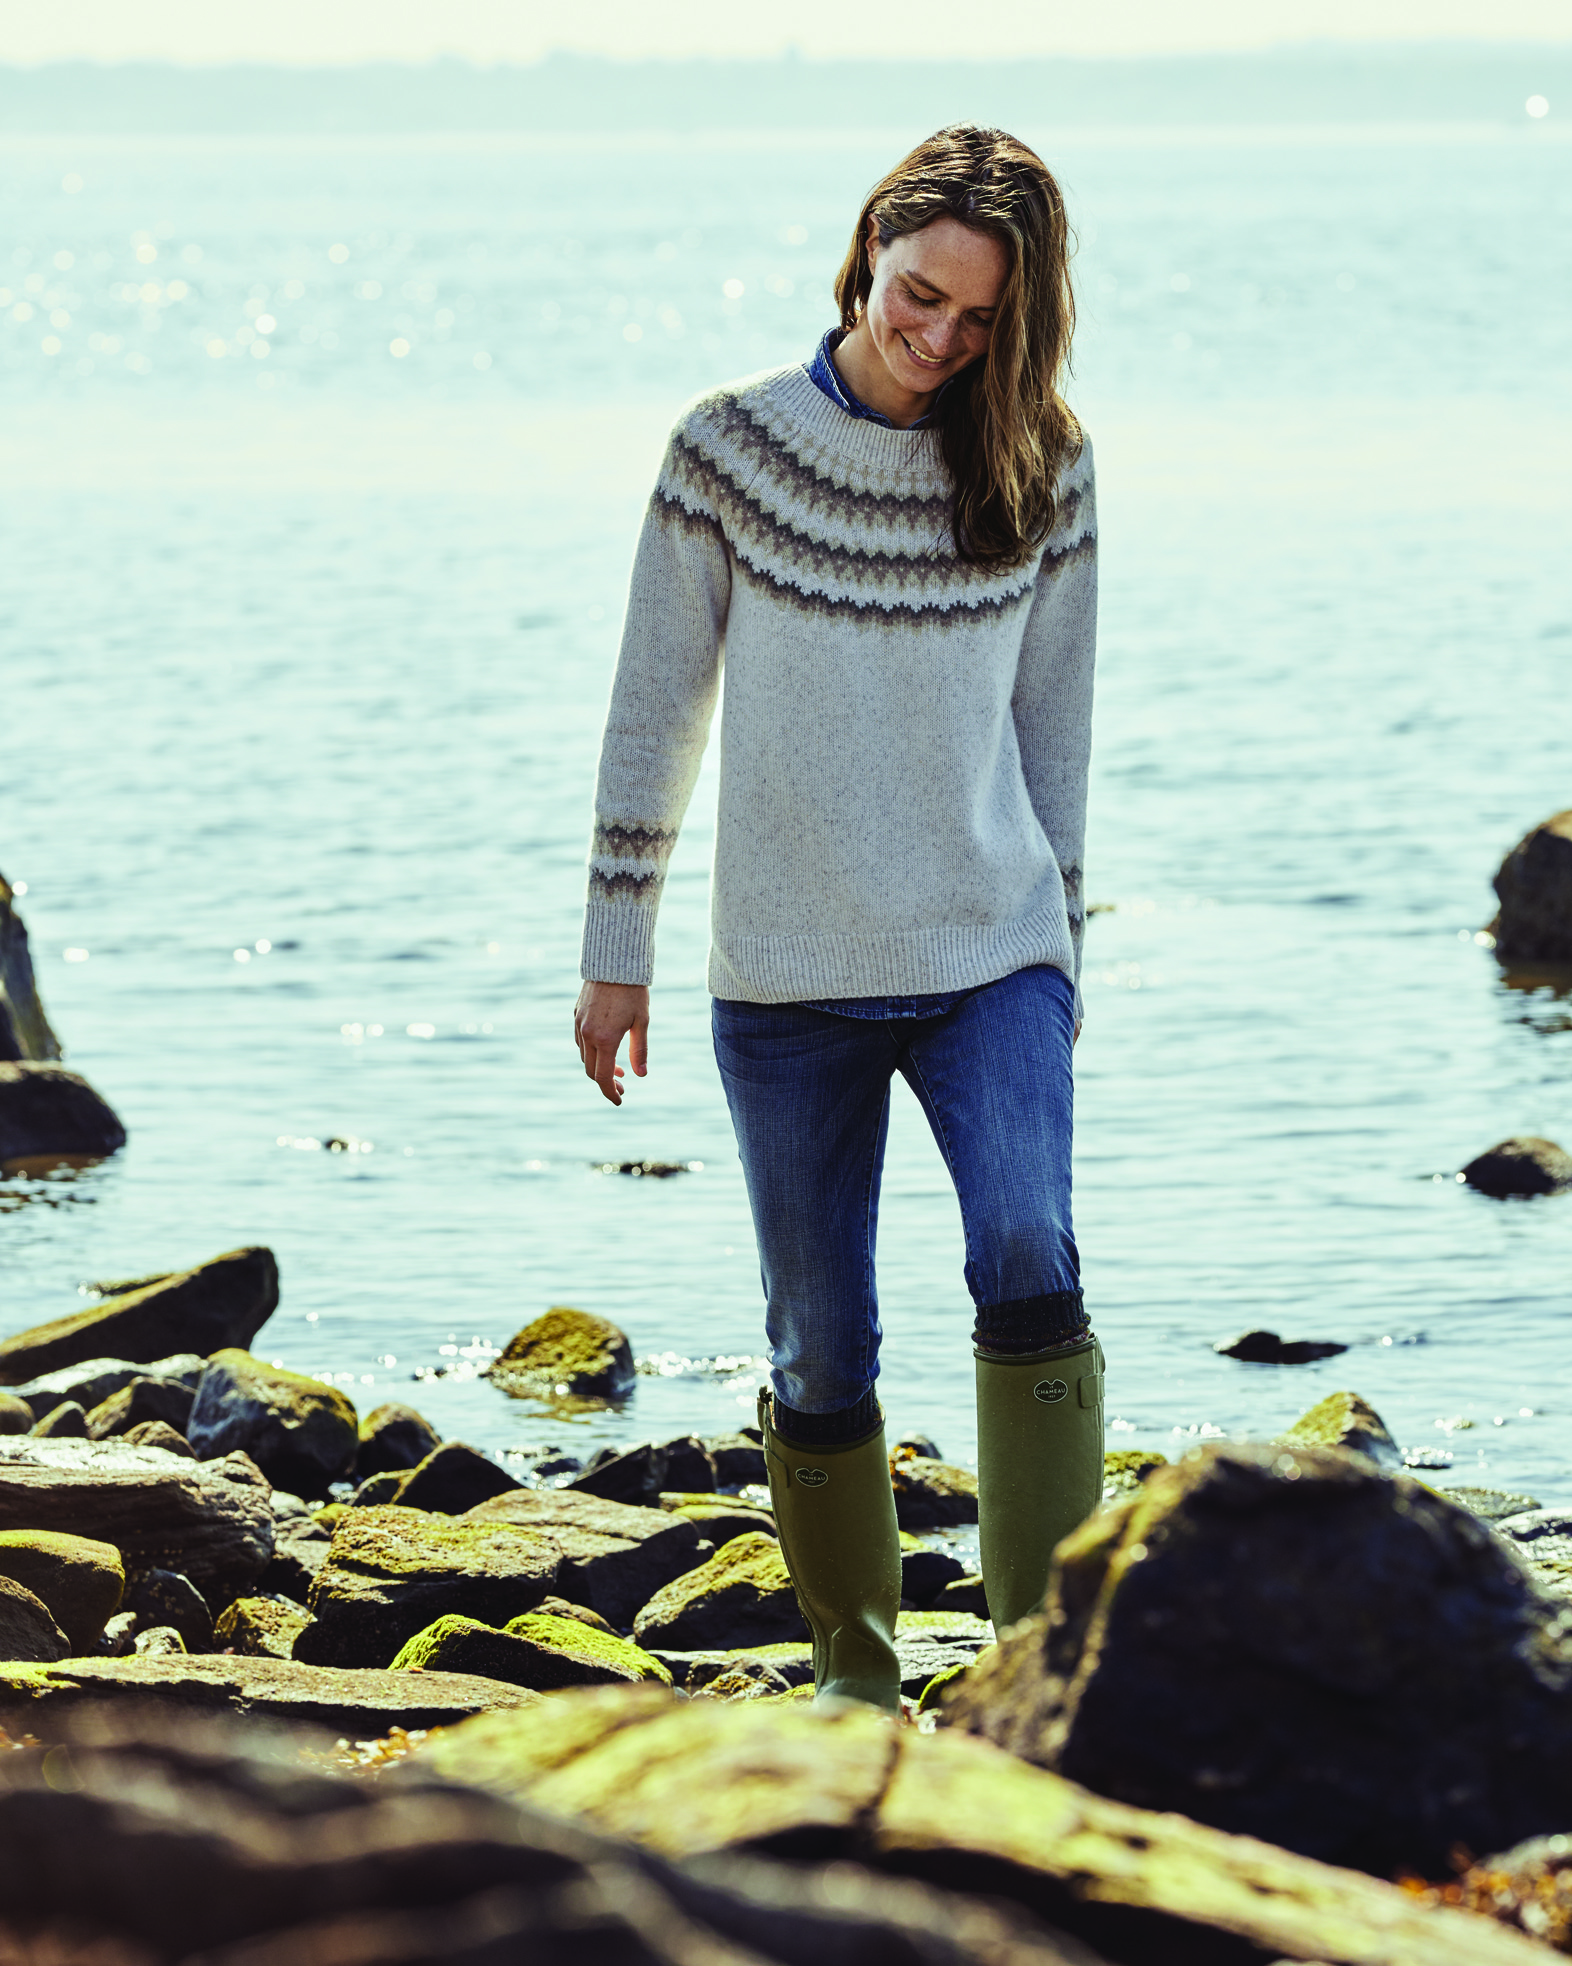 Winter knitwear from Orvis